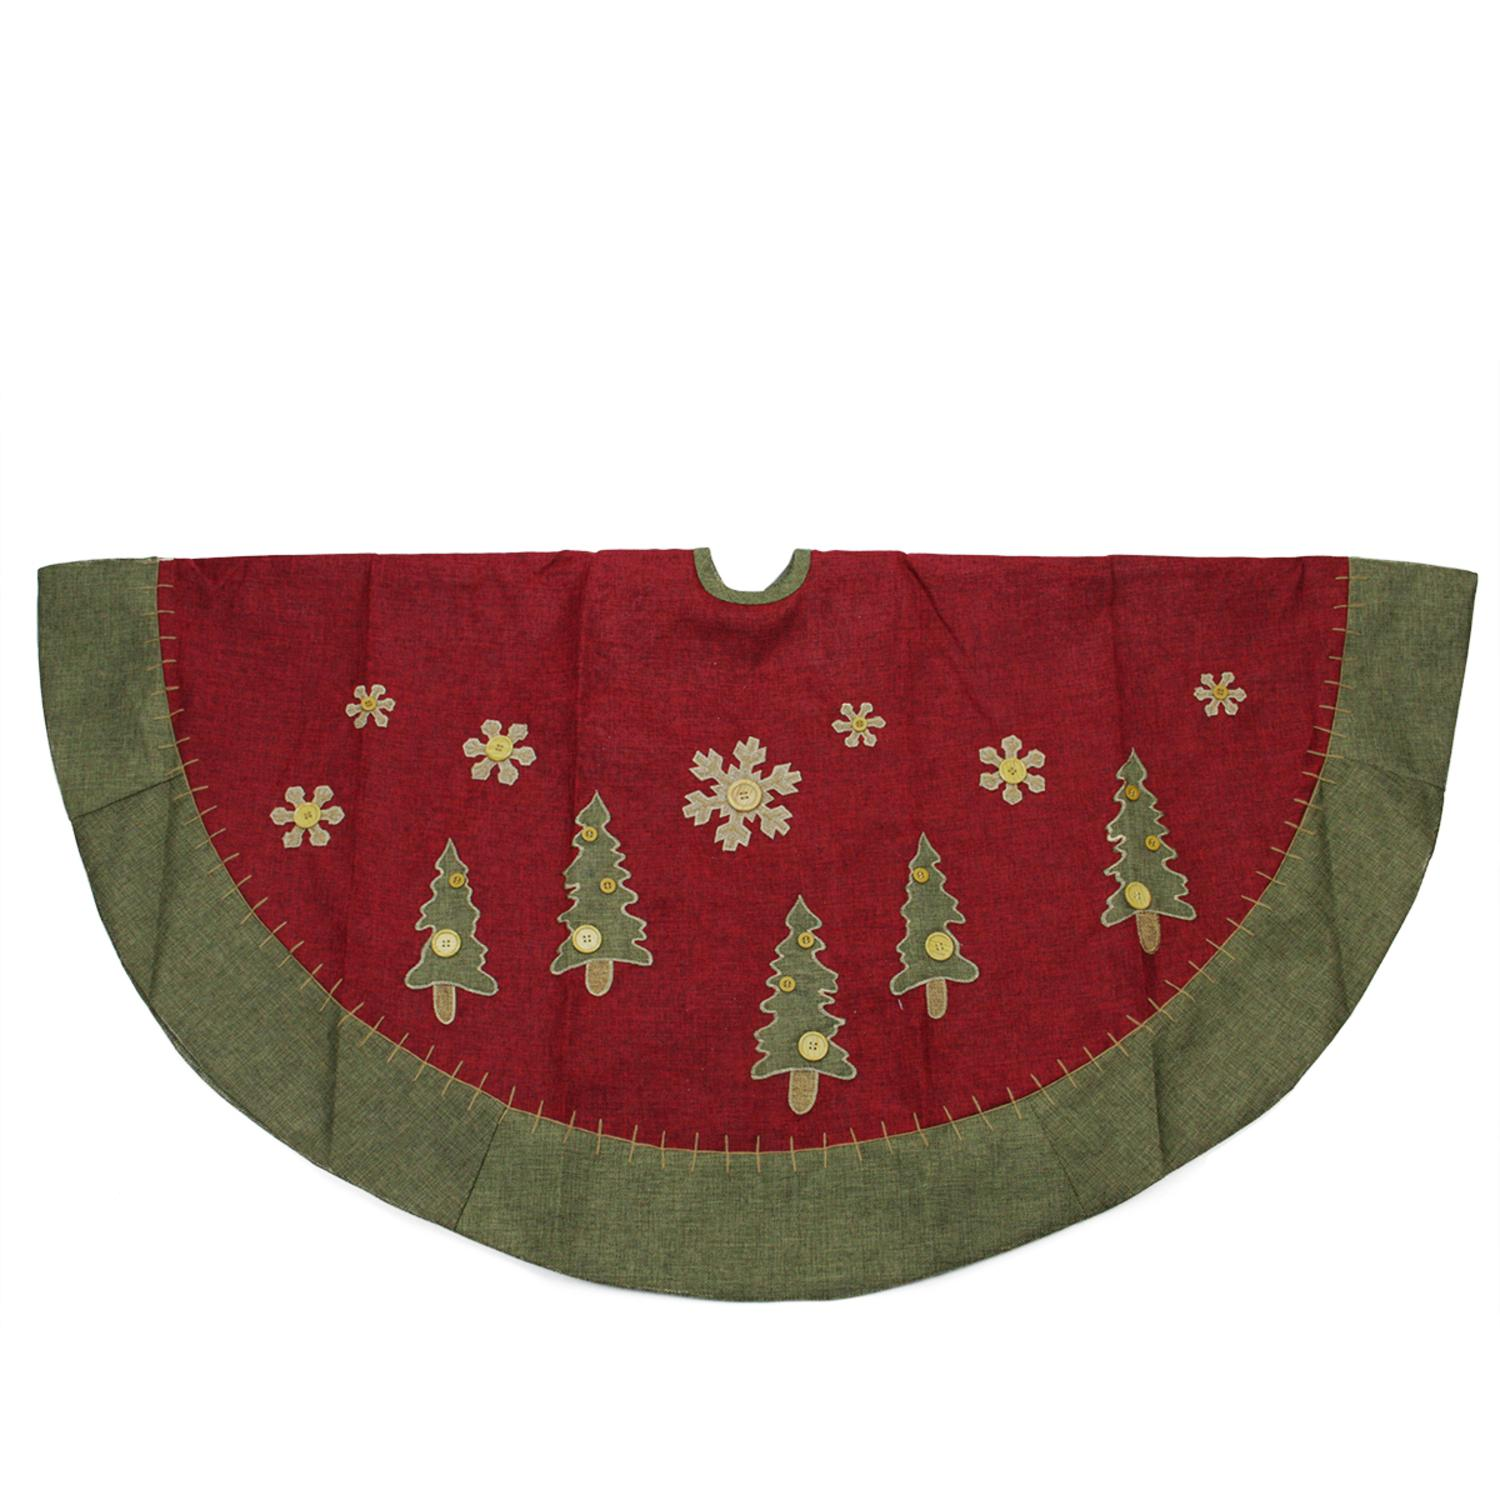 ''48'''' Natural Red and Green Christmas Tree Skirt with BLANKET Stitching Trim''